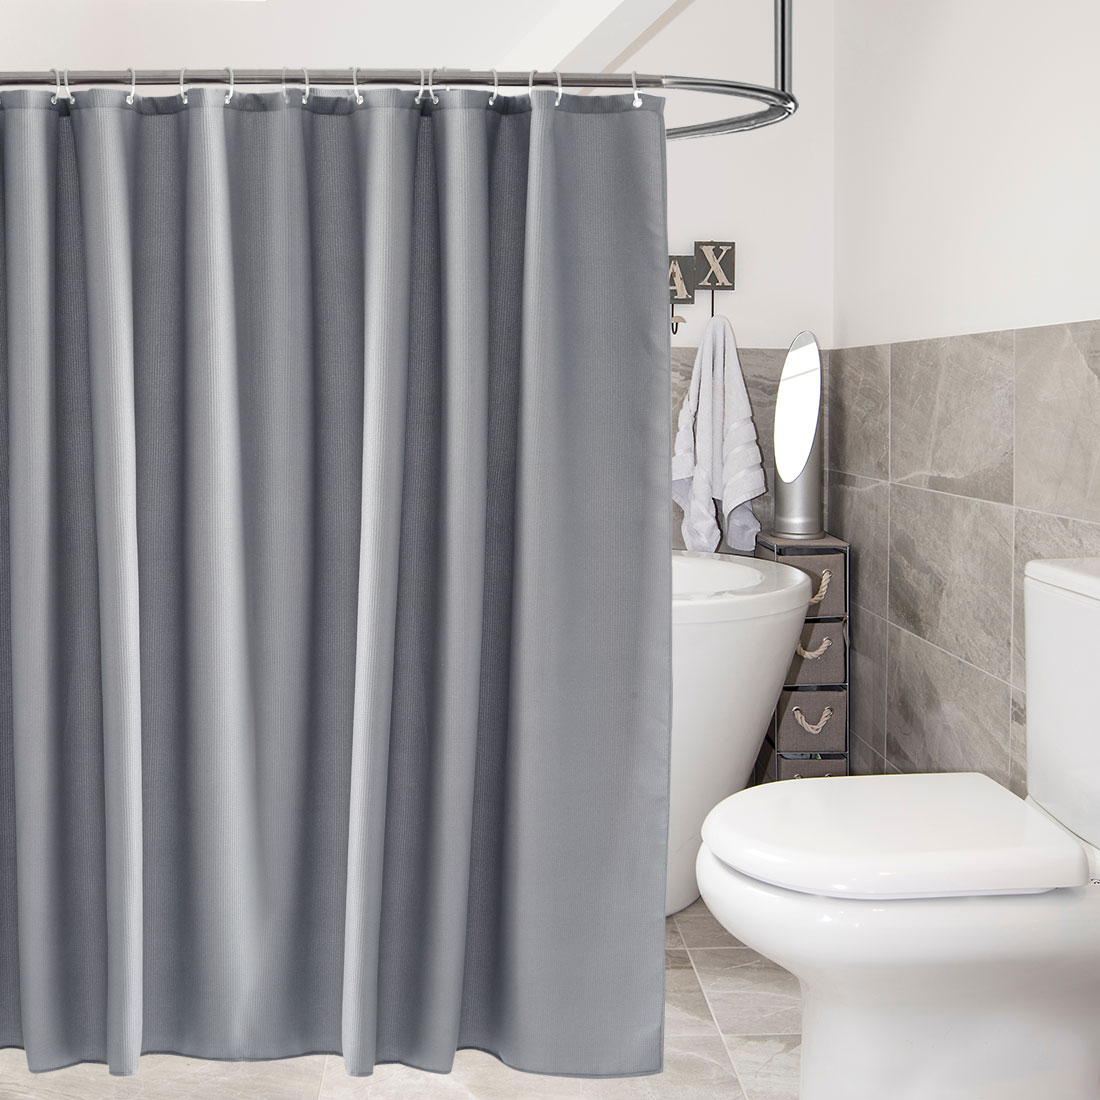 Gray Waffle Weave Shower Curtain Cotton Blend Fabric with 12 Hooks, 72x72 Long